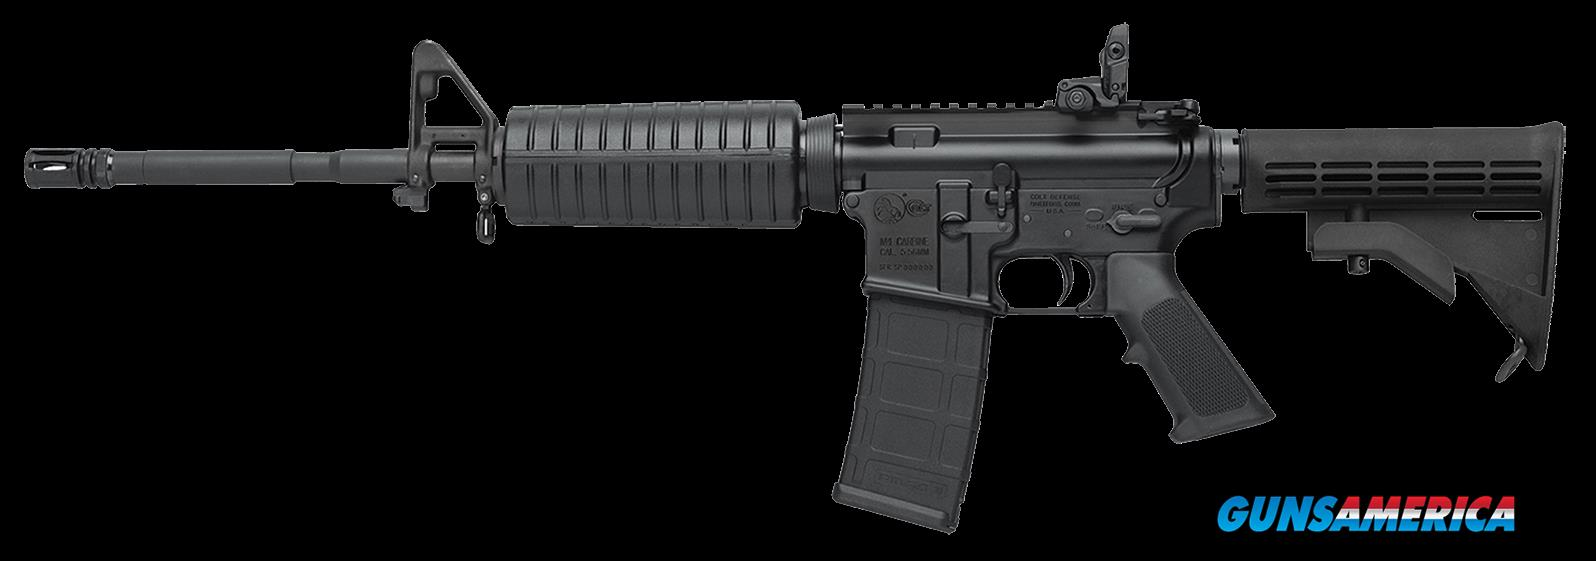 "Colt LE6920 AR-15 Carbine SA 223/5.56 16.1"" 30+1 PMAG MBUS 4-Pos Stk Blk  Guns > Rifles > Colt Military/Tactical Rifles"